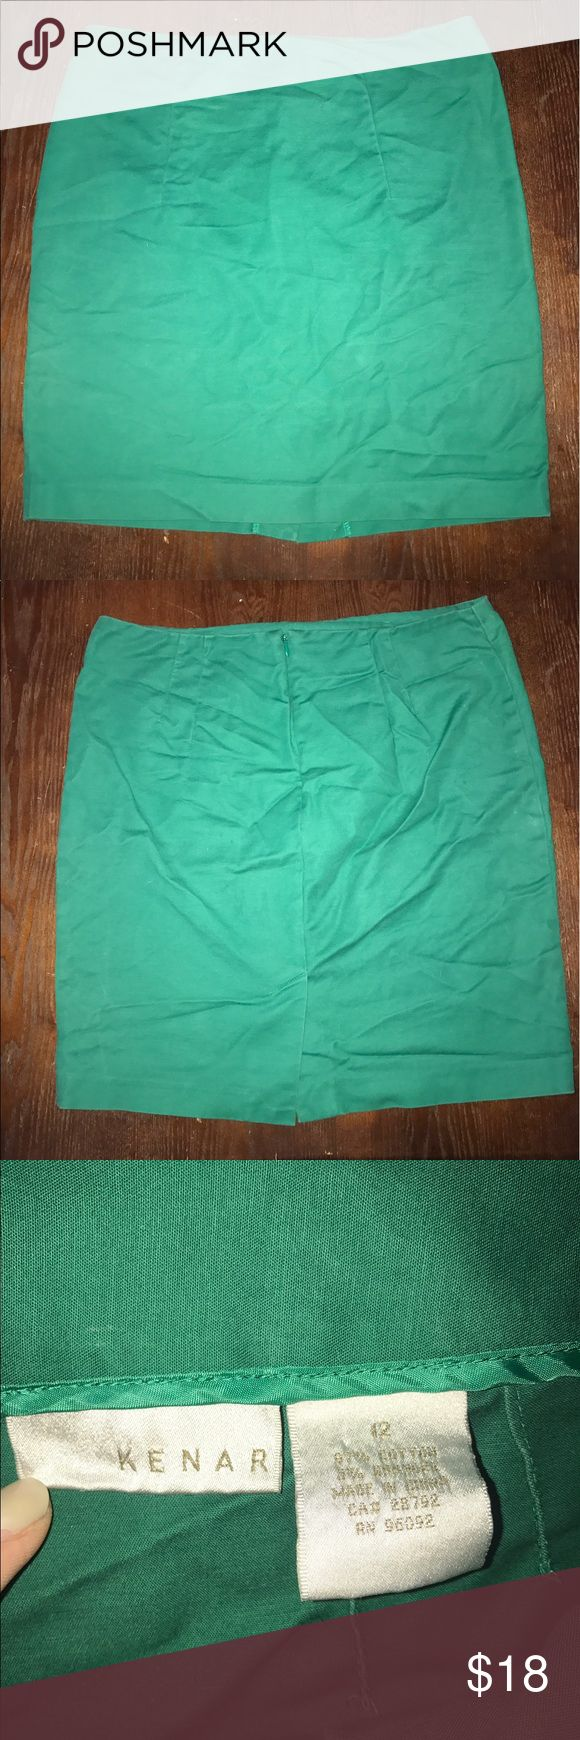 Green Pencil Skirt This skirt if perfect for those summer days at the office! Such a fun color! Comes to about an inch or two above the knee (Im 5'9 for reference) Kenar Skirts Pencil